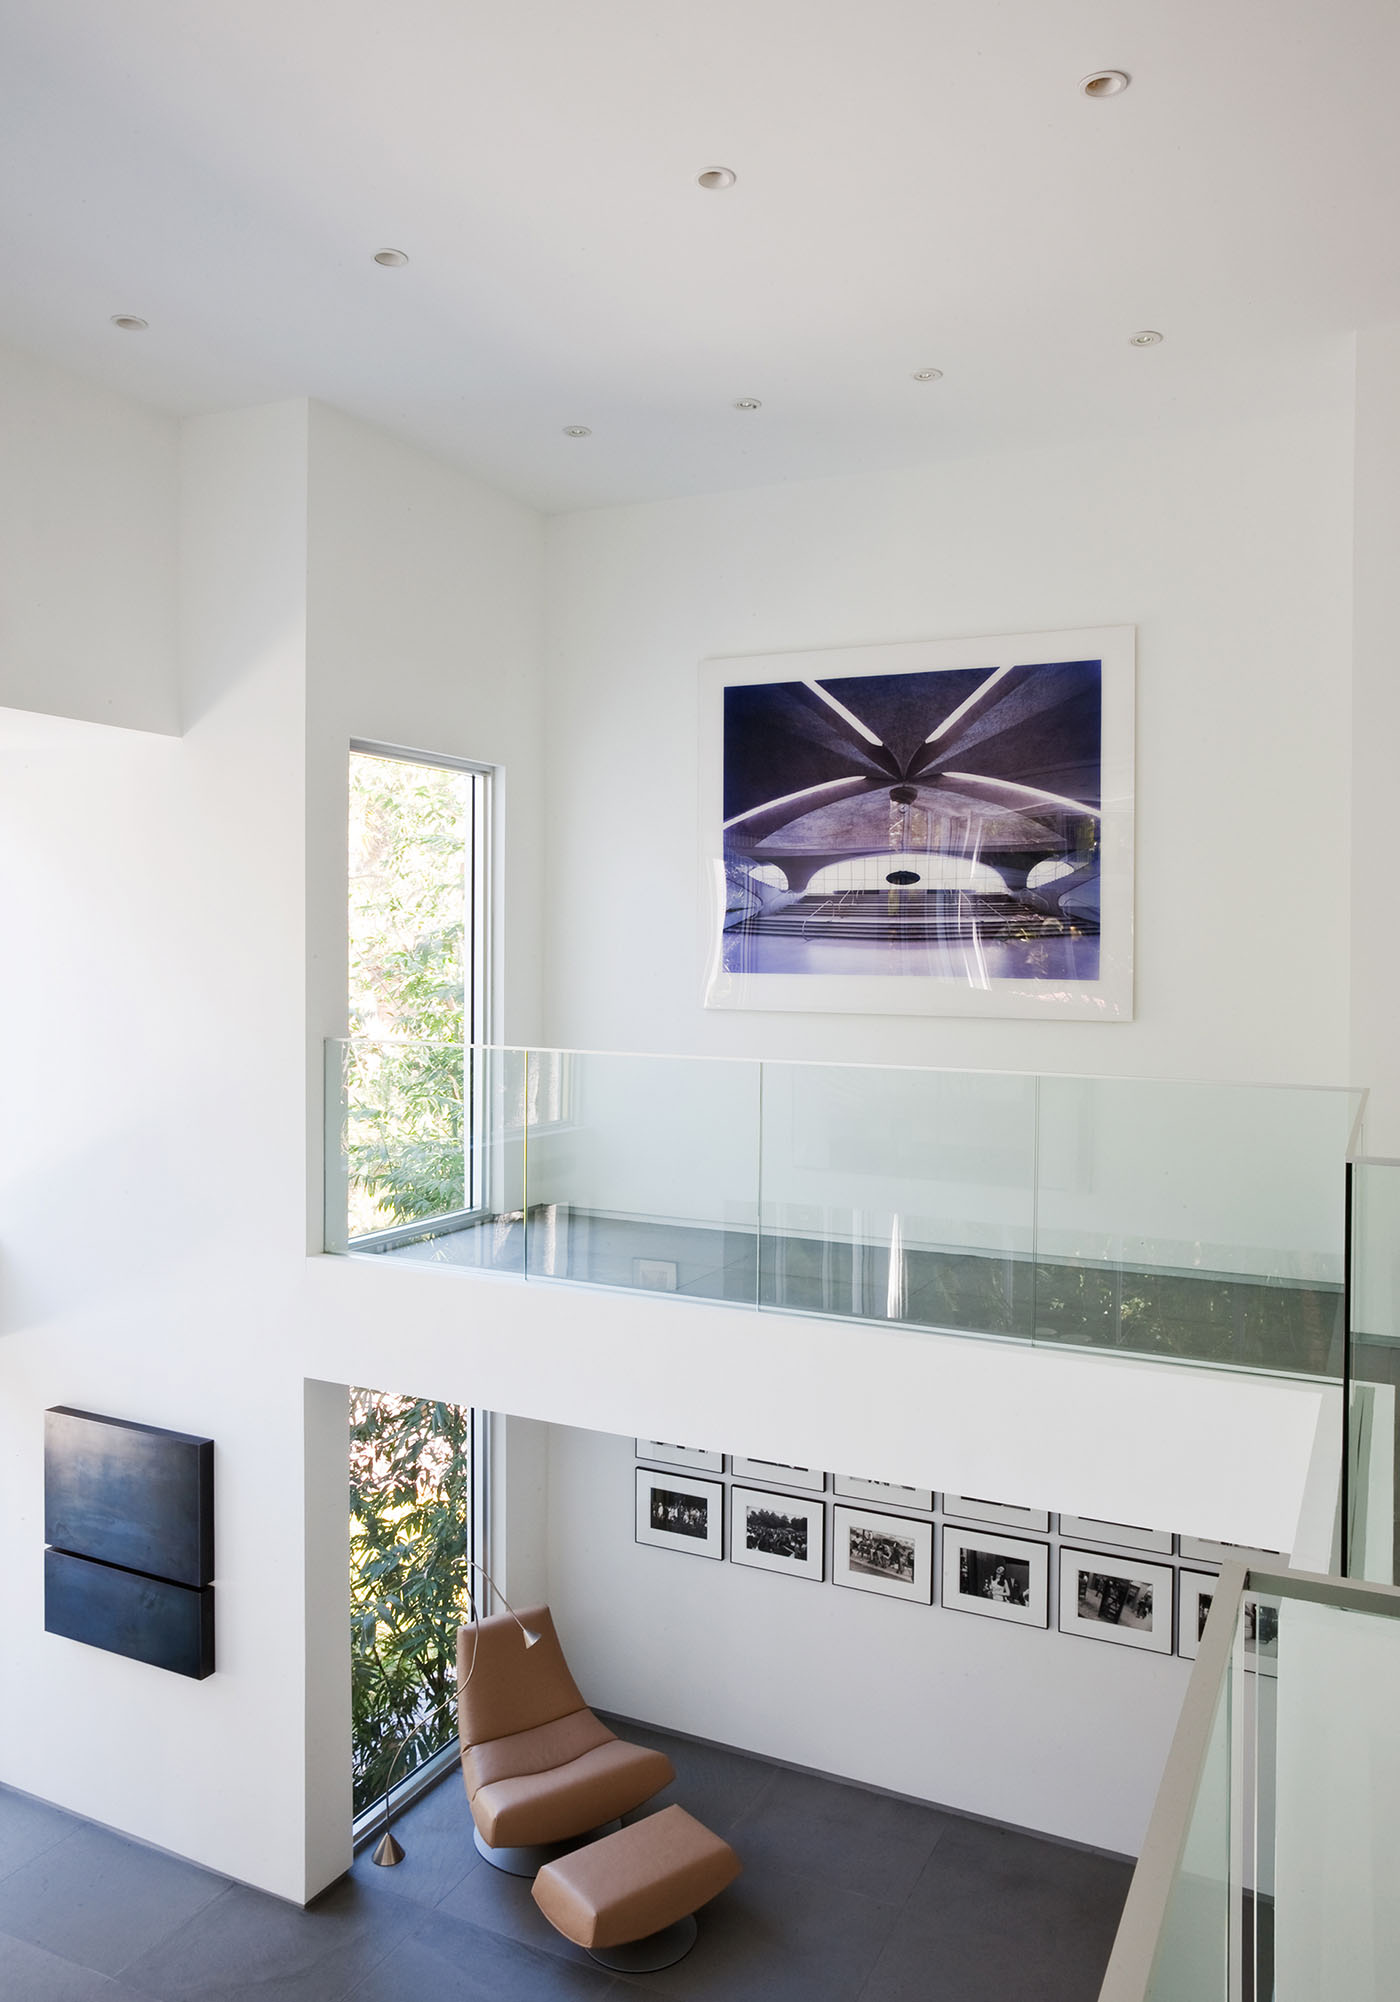 Calm and Minimalistic Spaces of Utopia Residence Coconut Grove by [STRANG] Architecture-09